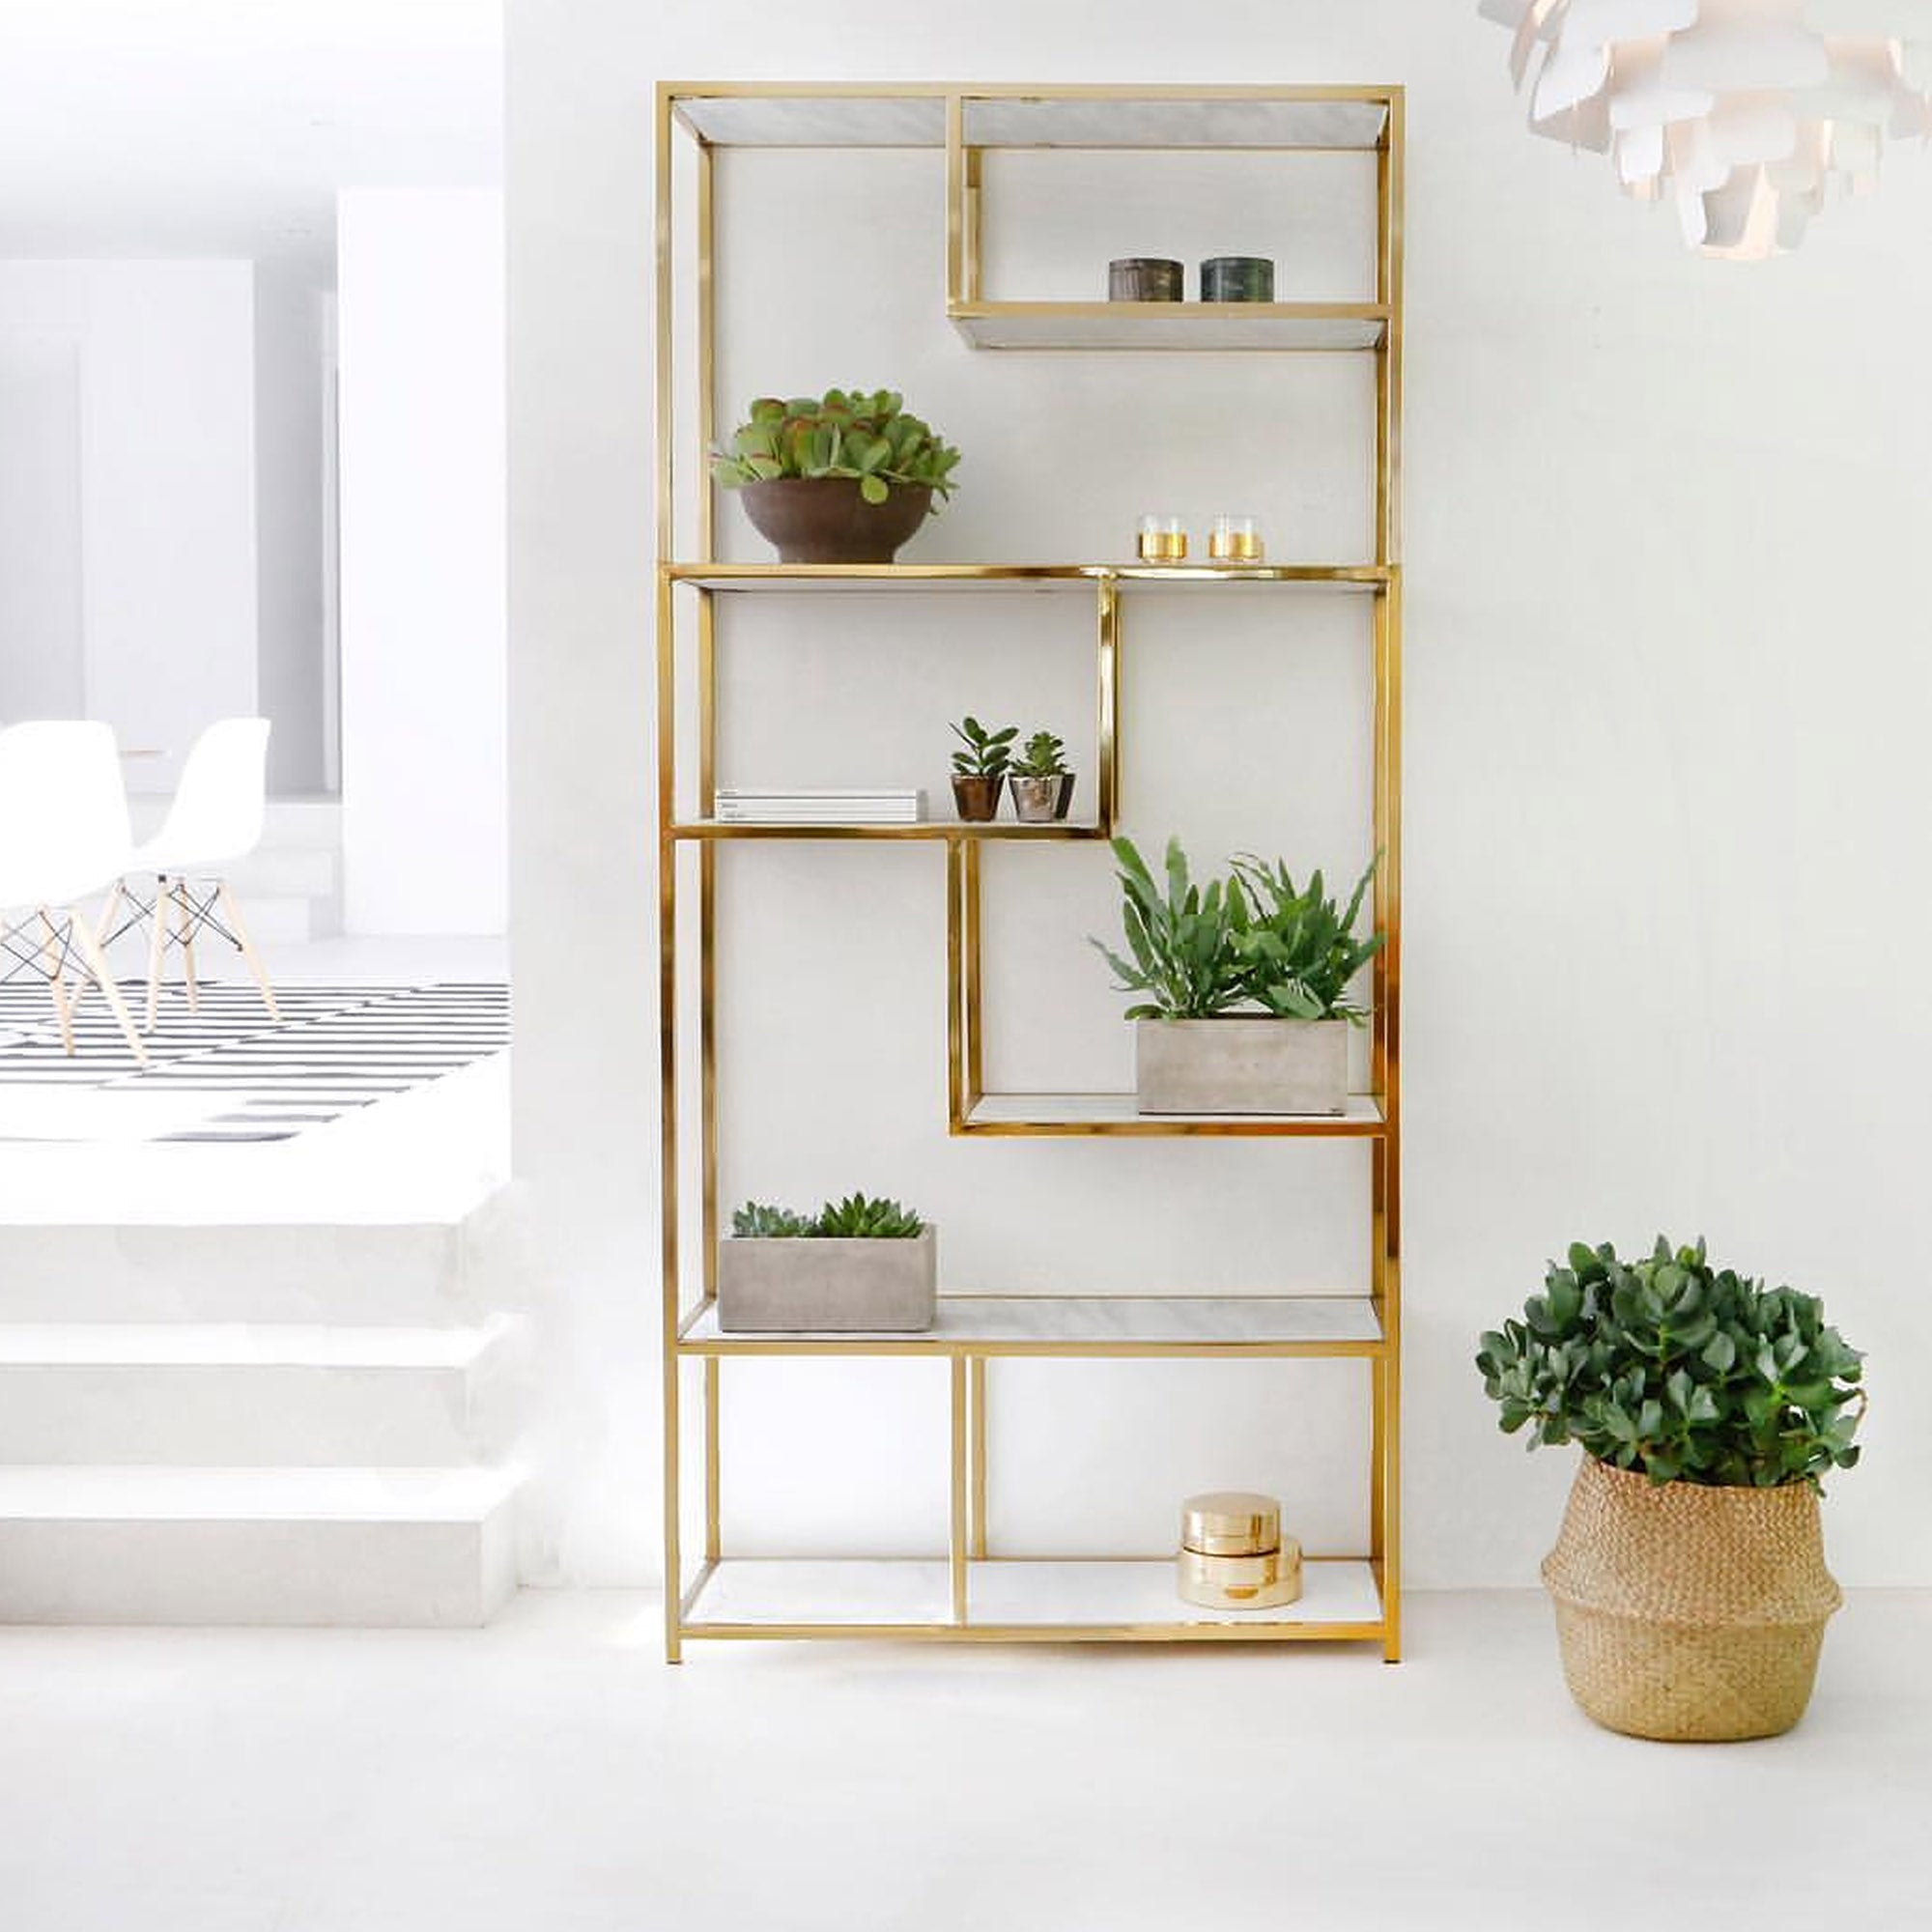 Stainless Bookcase AE001-M-G-TG-336 - ebarza